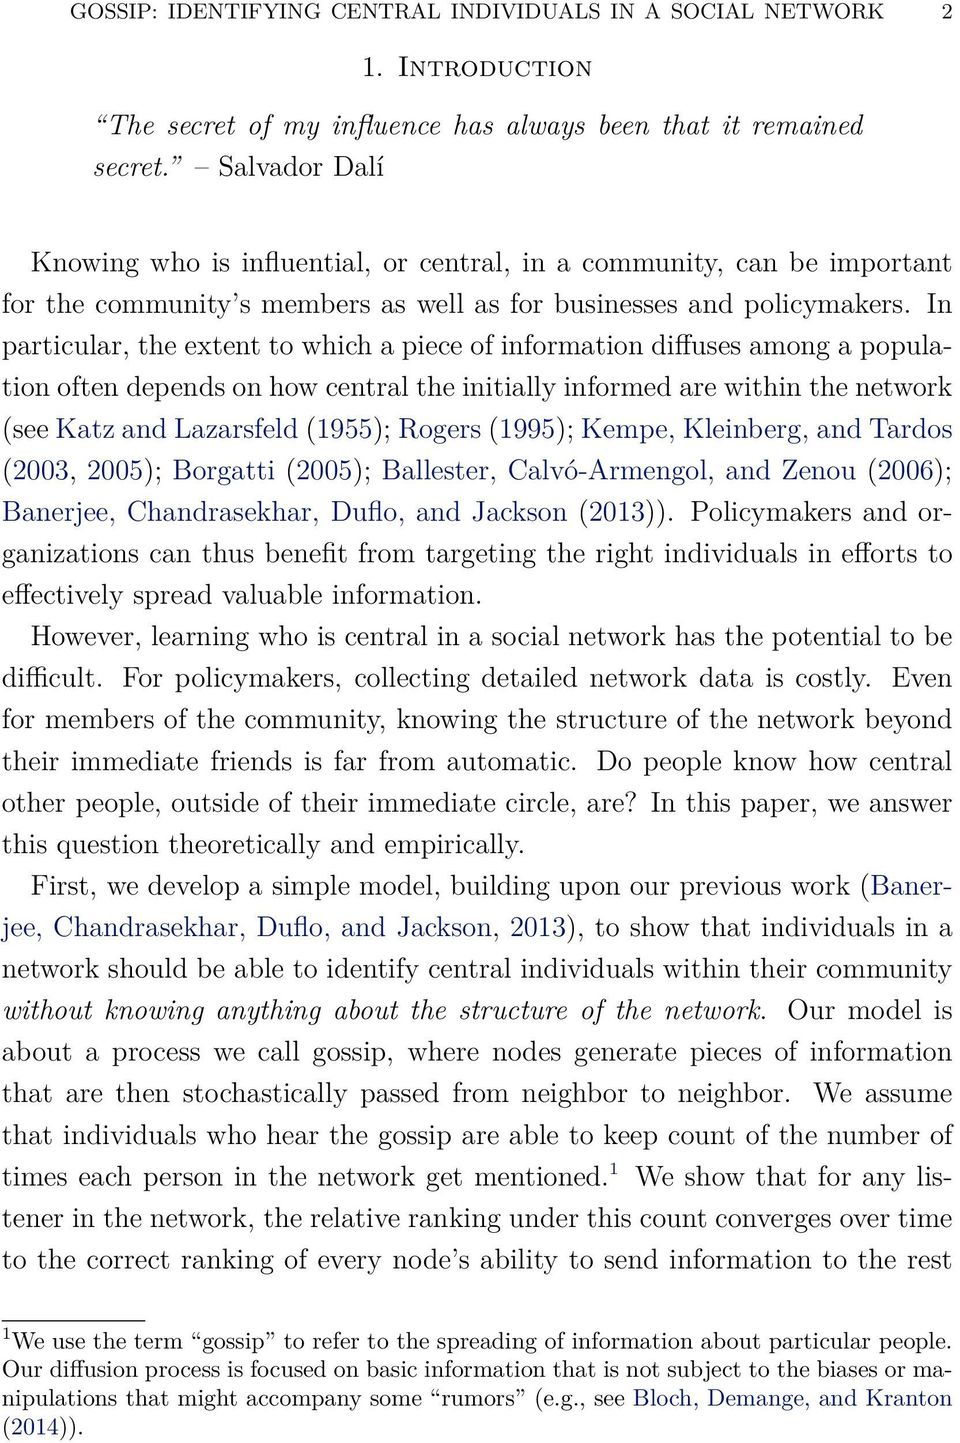 In particular, the extent to which a piece of information diffuses among a population often depends on how central the initially informed are within the network (see Katz and Lazarsfeld (1955);